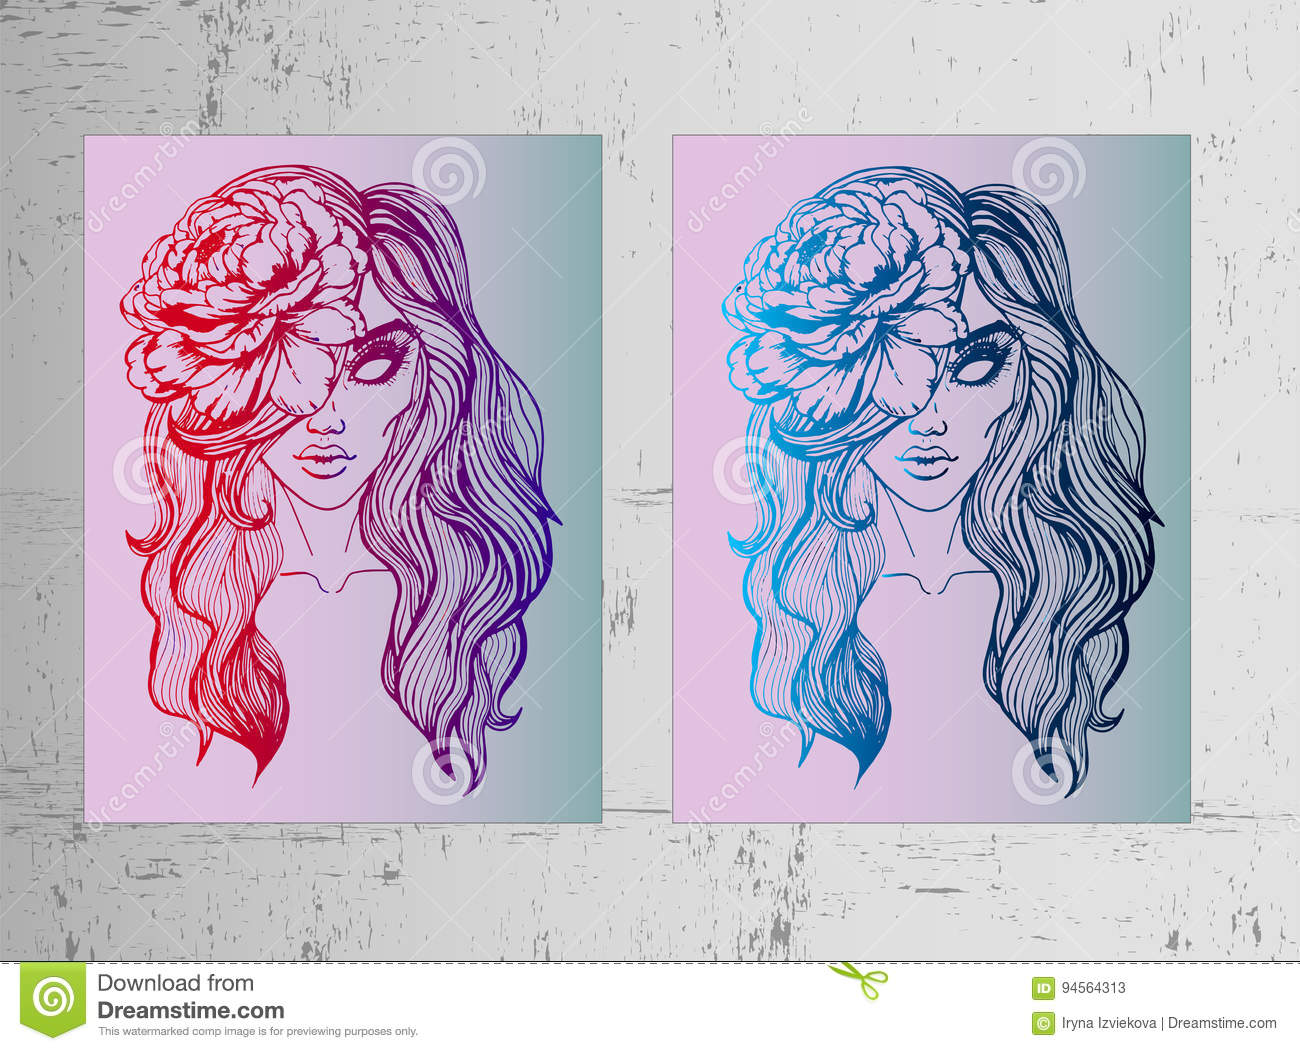 Two Posters A Girl With A Pion In Her Hair Beautiful And Bright